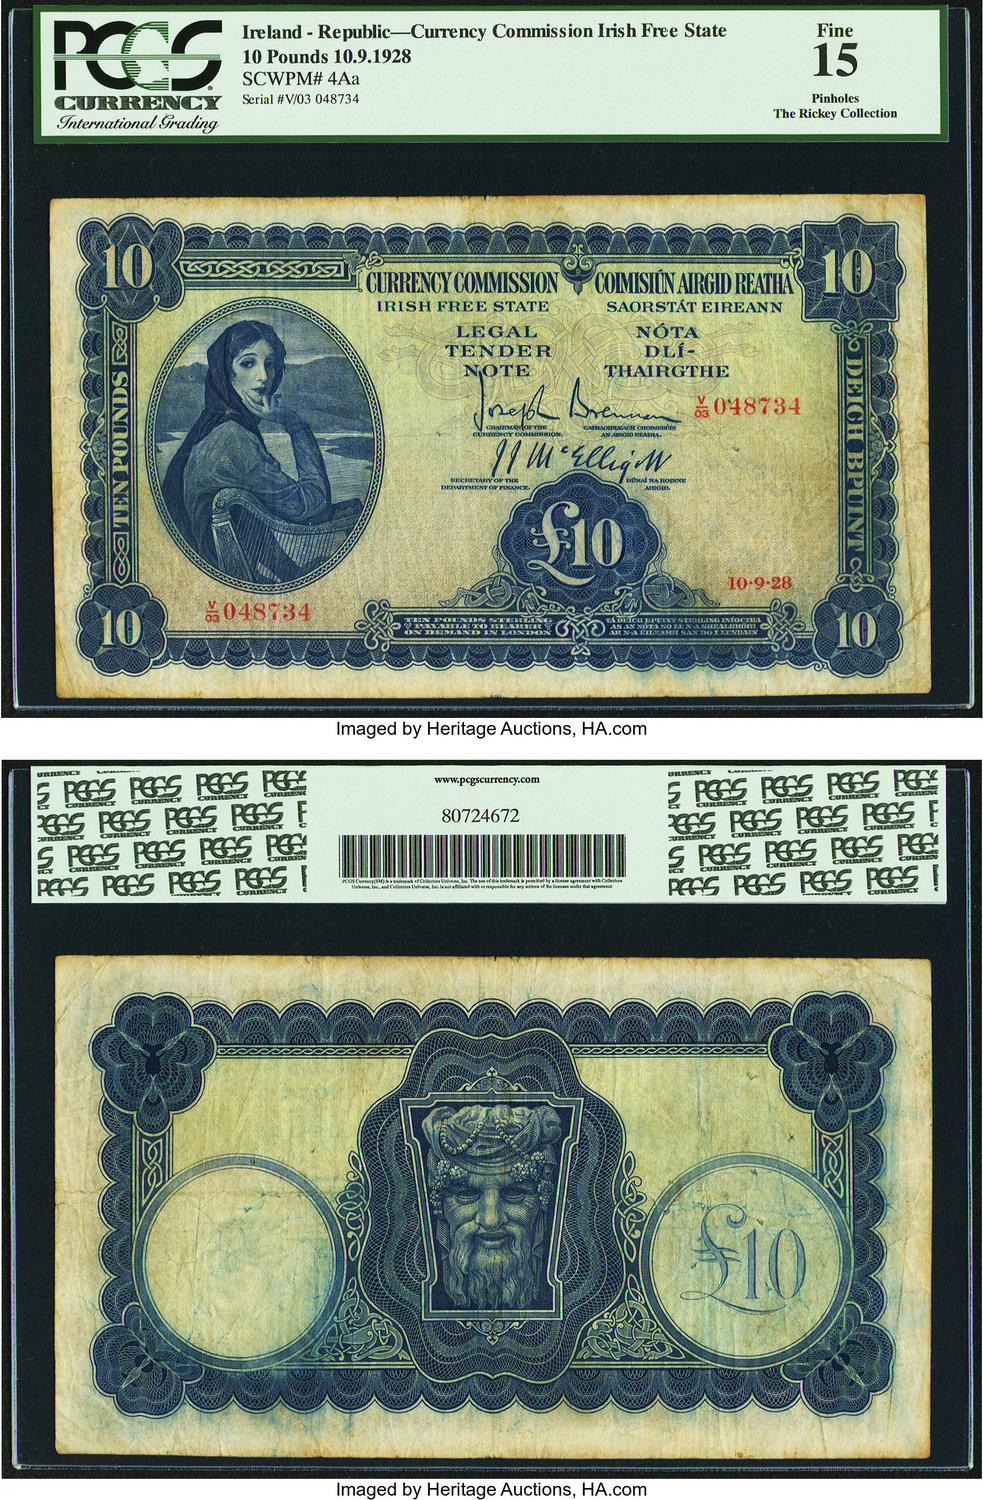 World Currency Ireland Commission Irish Free State 10 9 28 Pick 4aa This Large Format Blue And Green